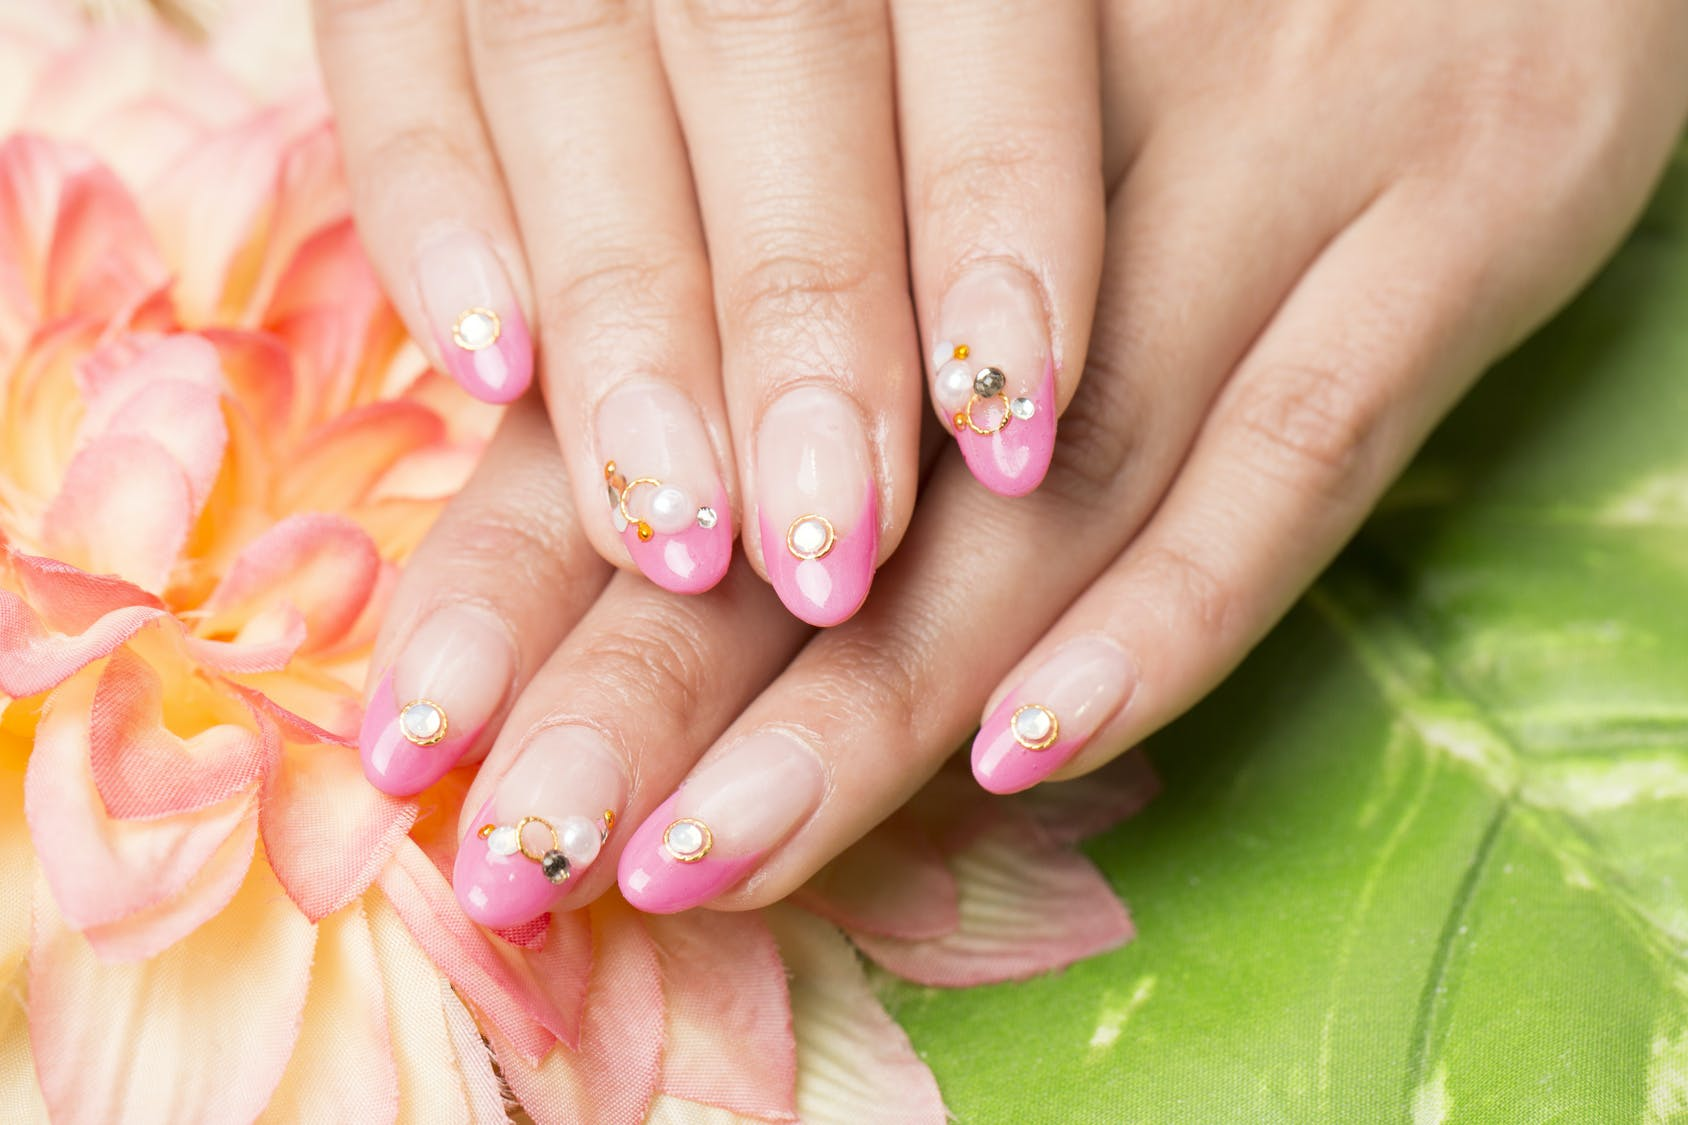 68ab213998dad7df5a134ba94338ee030d71a196 nail art